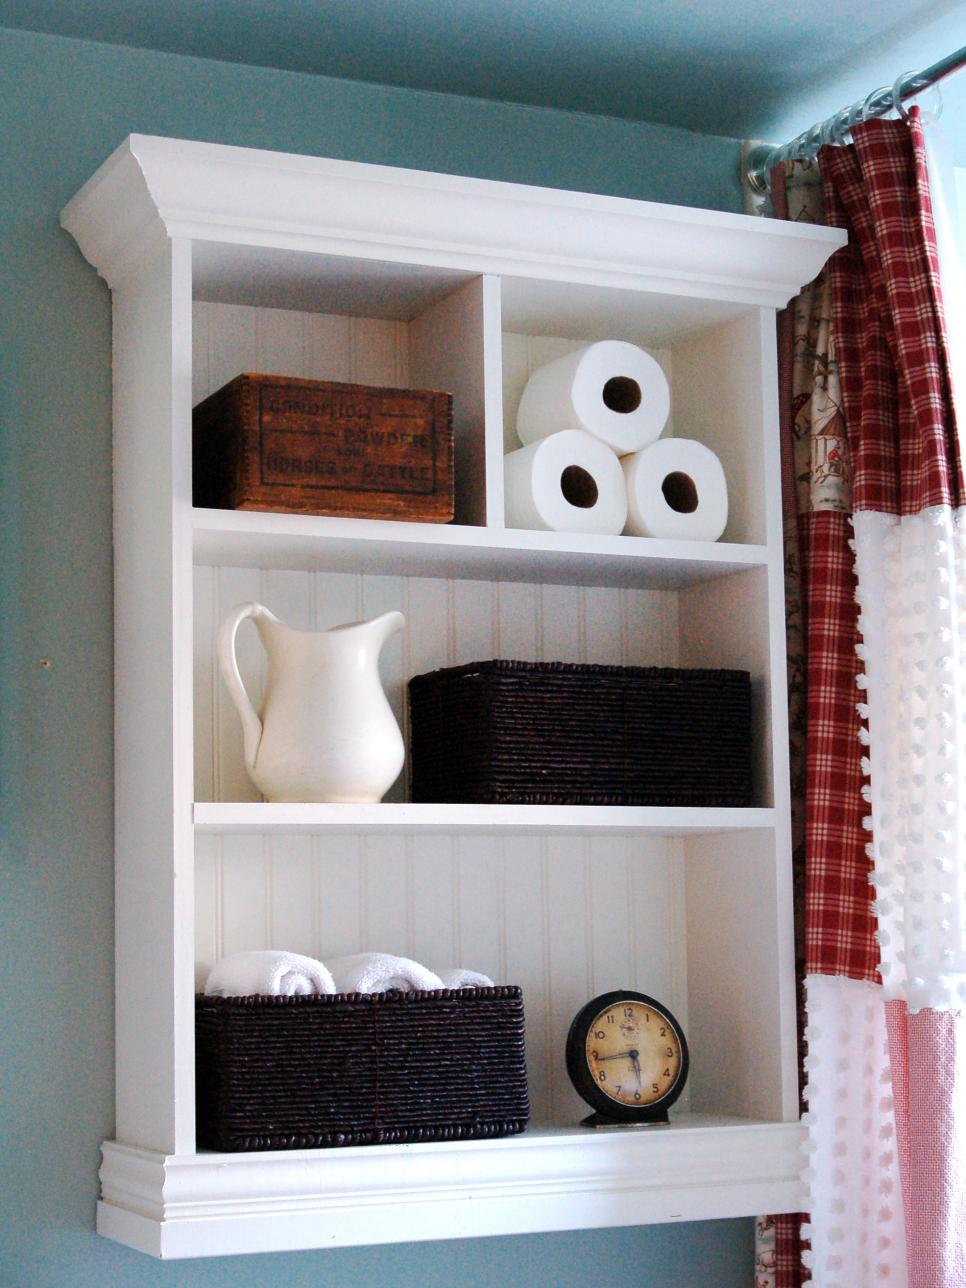 Clever storage ideas for small spaces - Clever Storage Ideas For Small Spaces 29